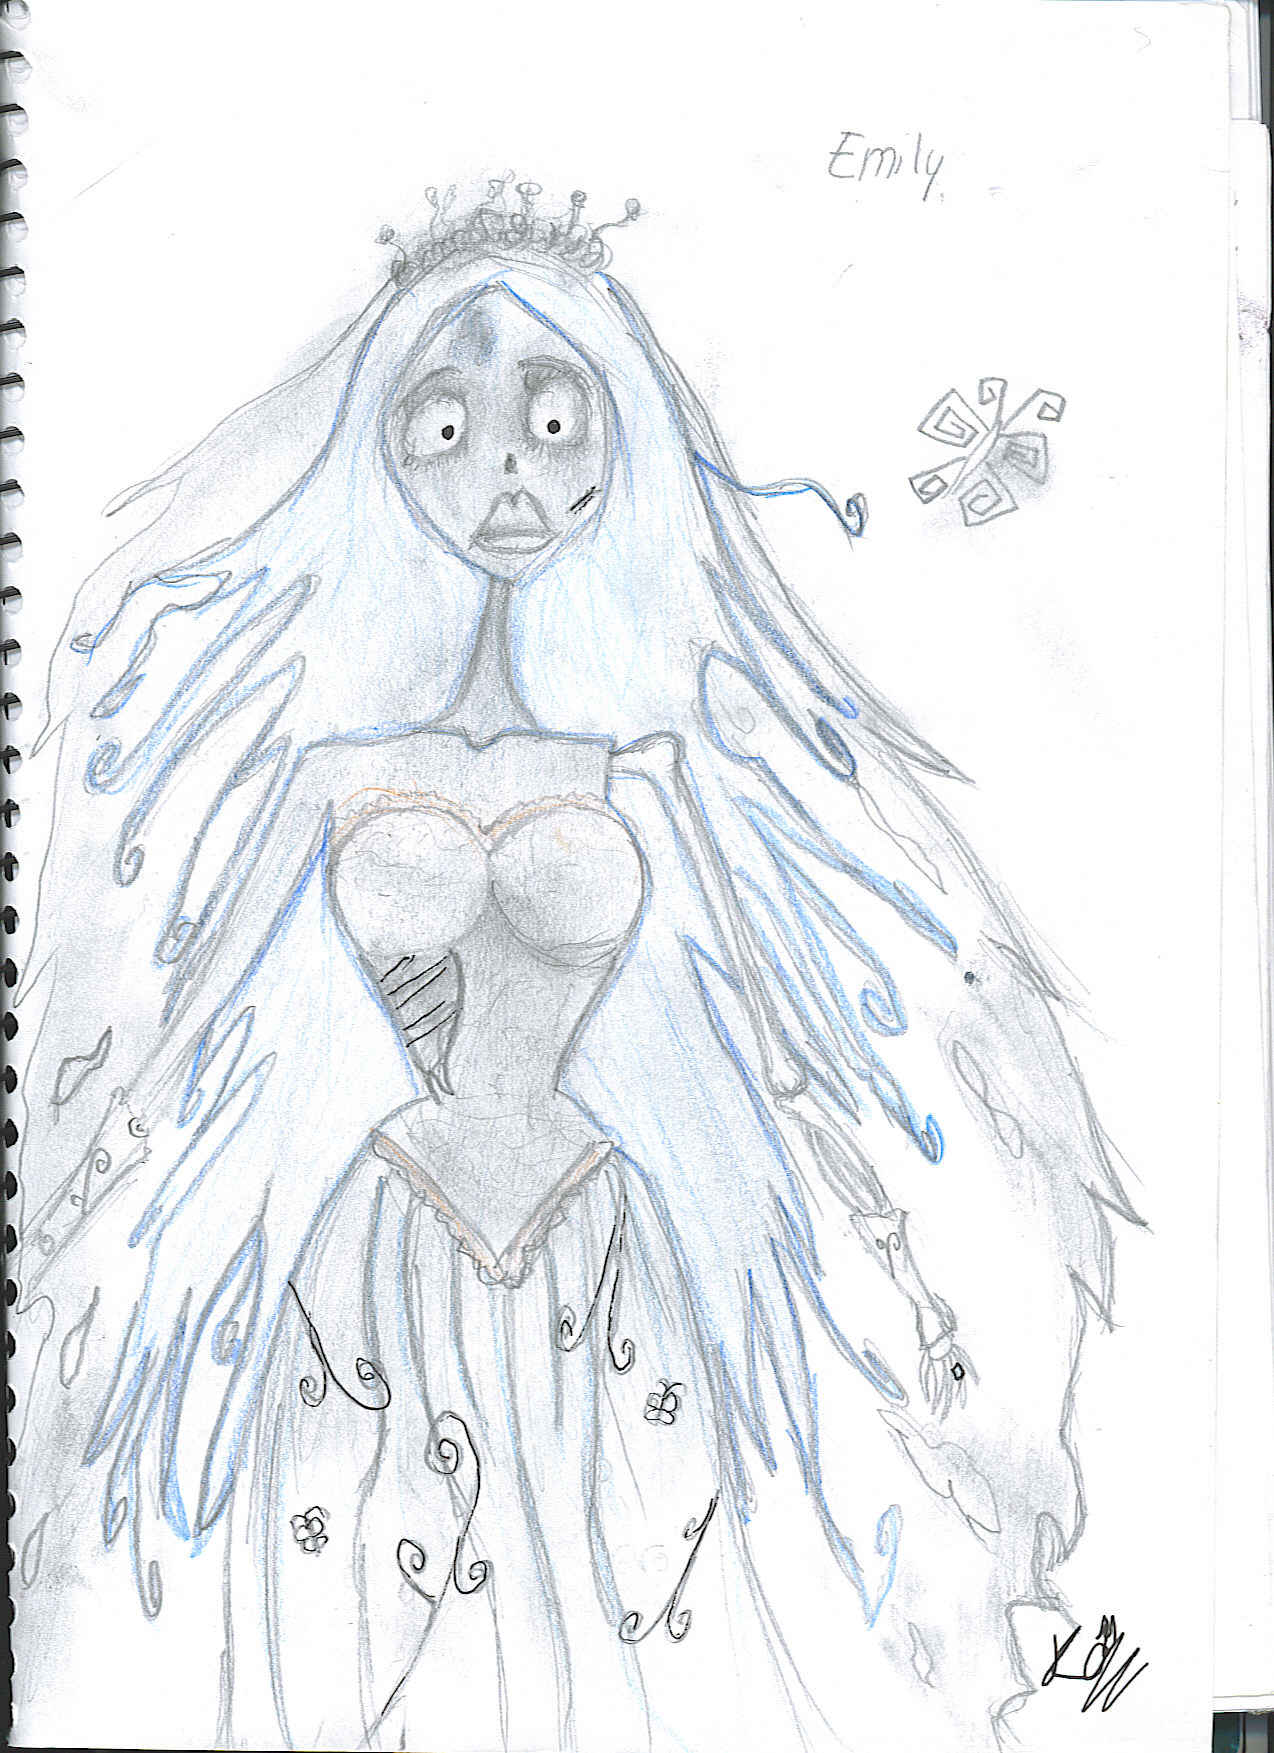 coloring pages corpse bride - free coloring pages of m and bride